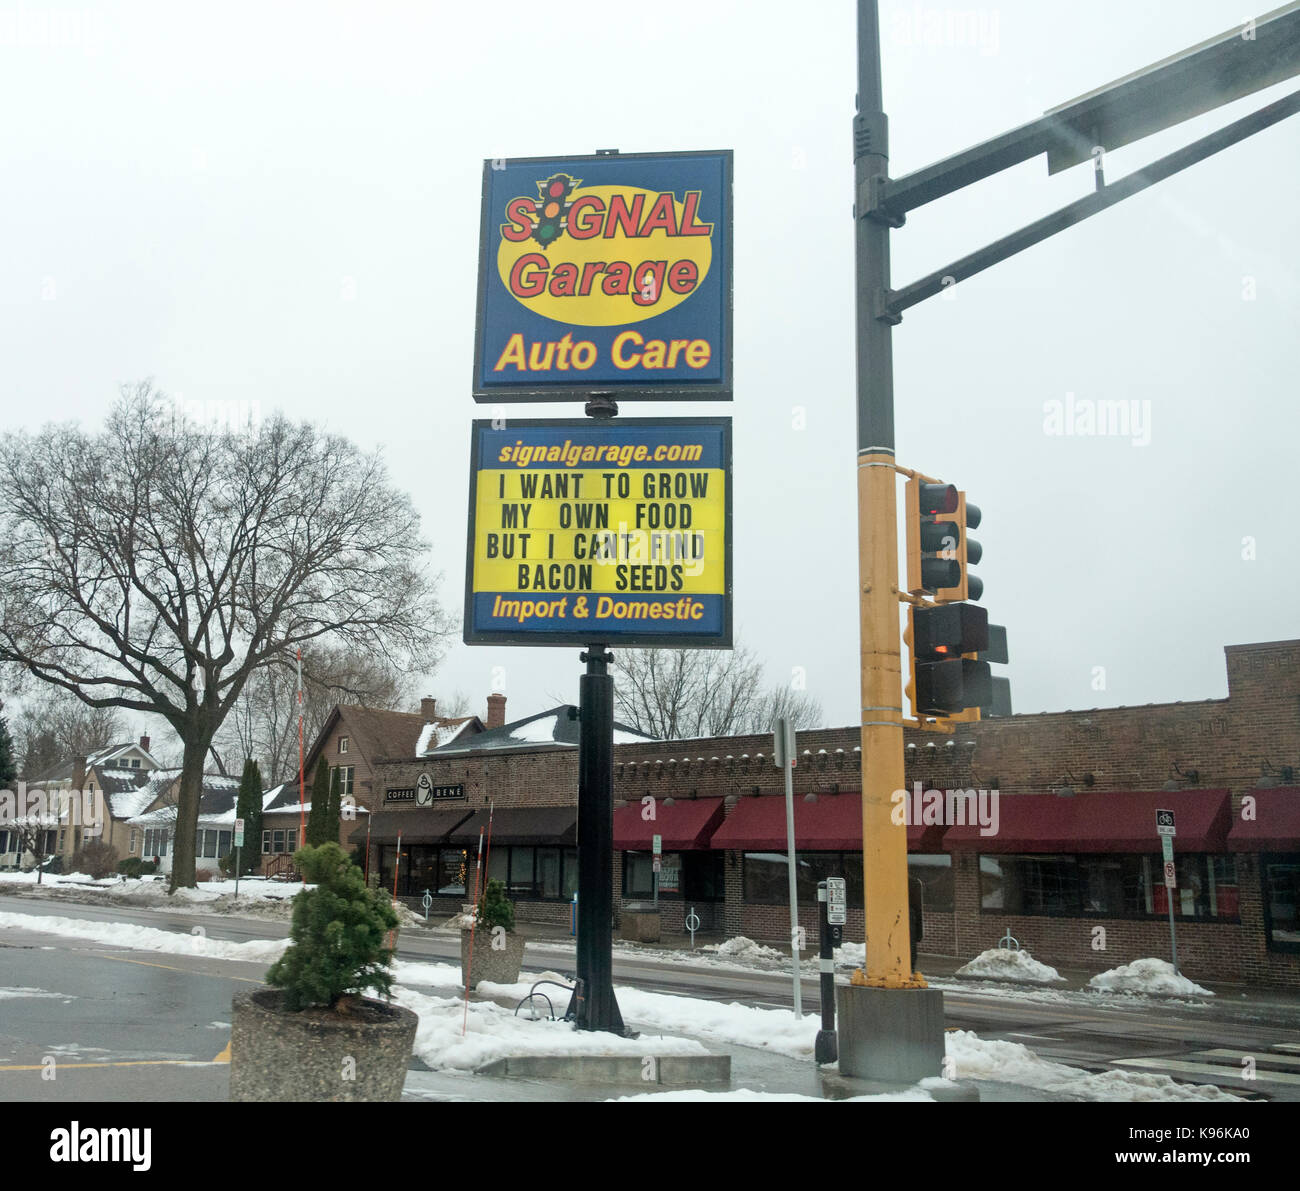 Sign with the quotation 'I want to grow my own food but I can't find bacon seeds'. St Paul Minnesota - Stock Image